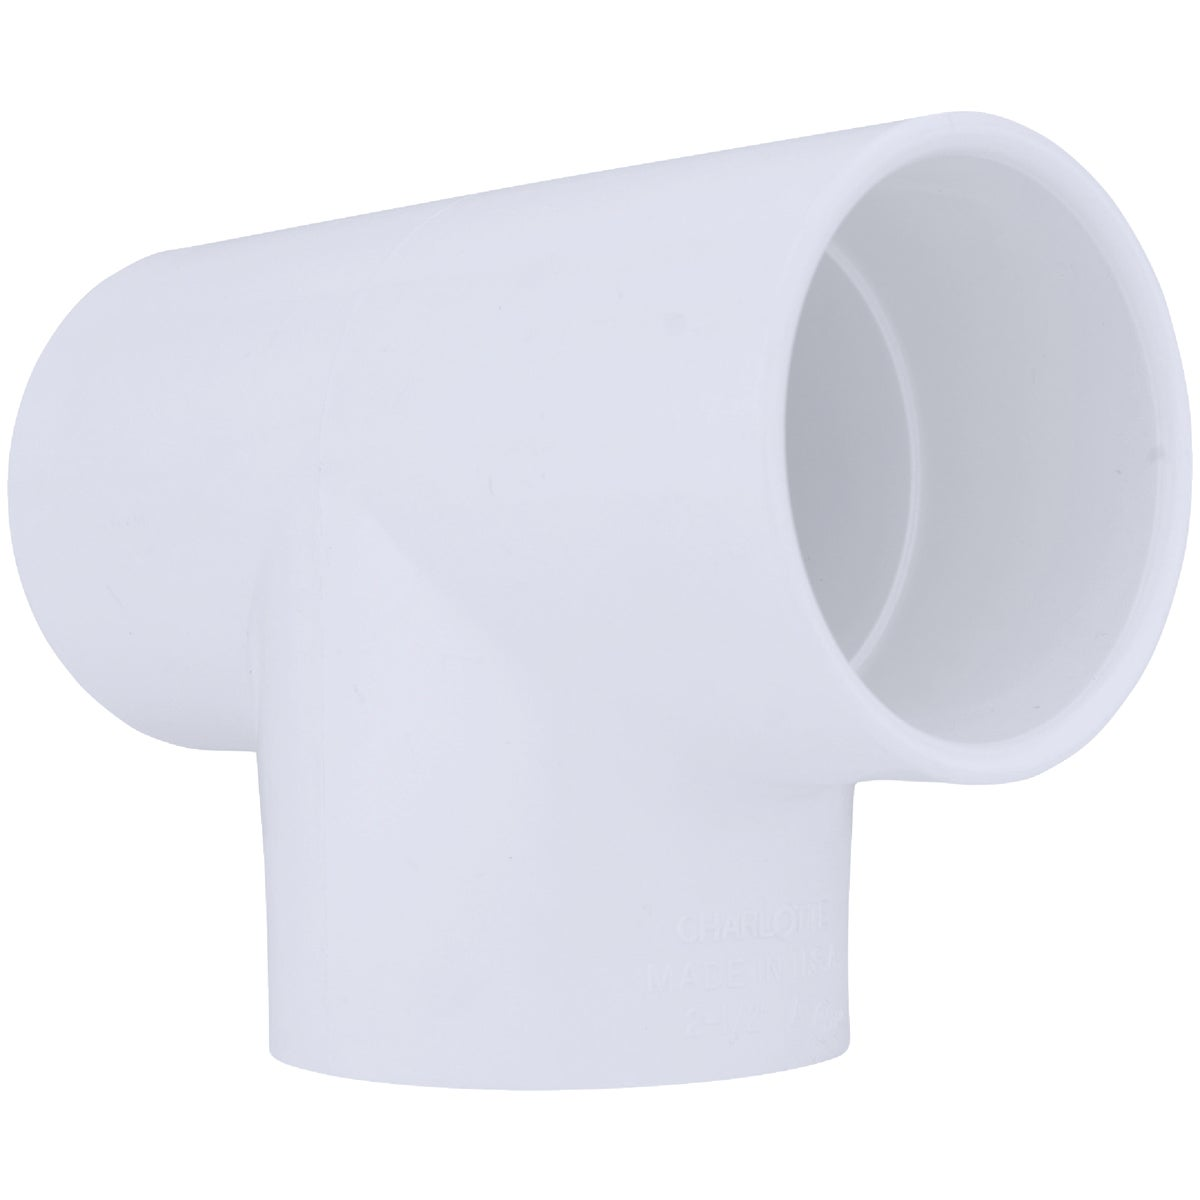 "2-1/2"" PVC SLIP TEE - 31450 by Genova Inc"